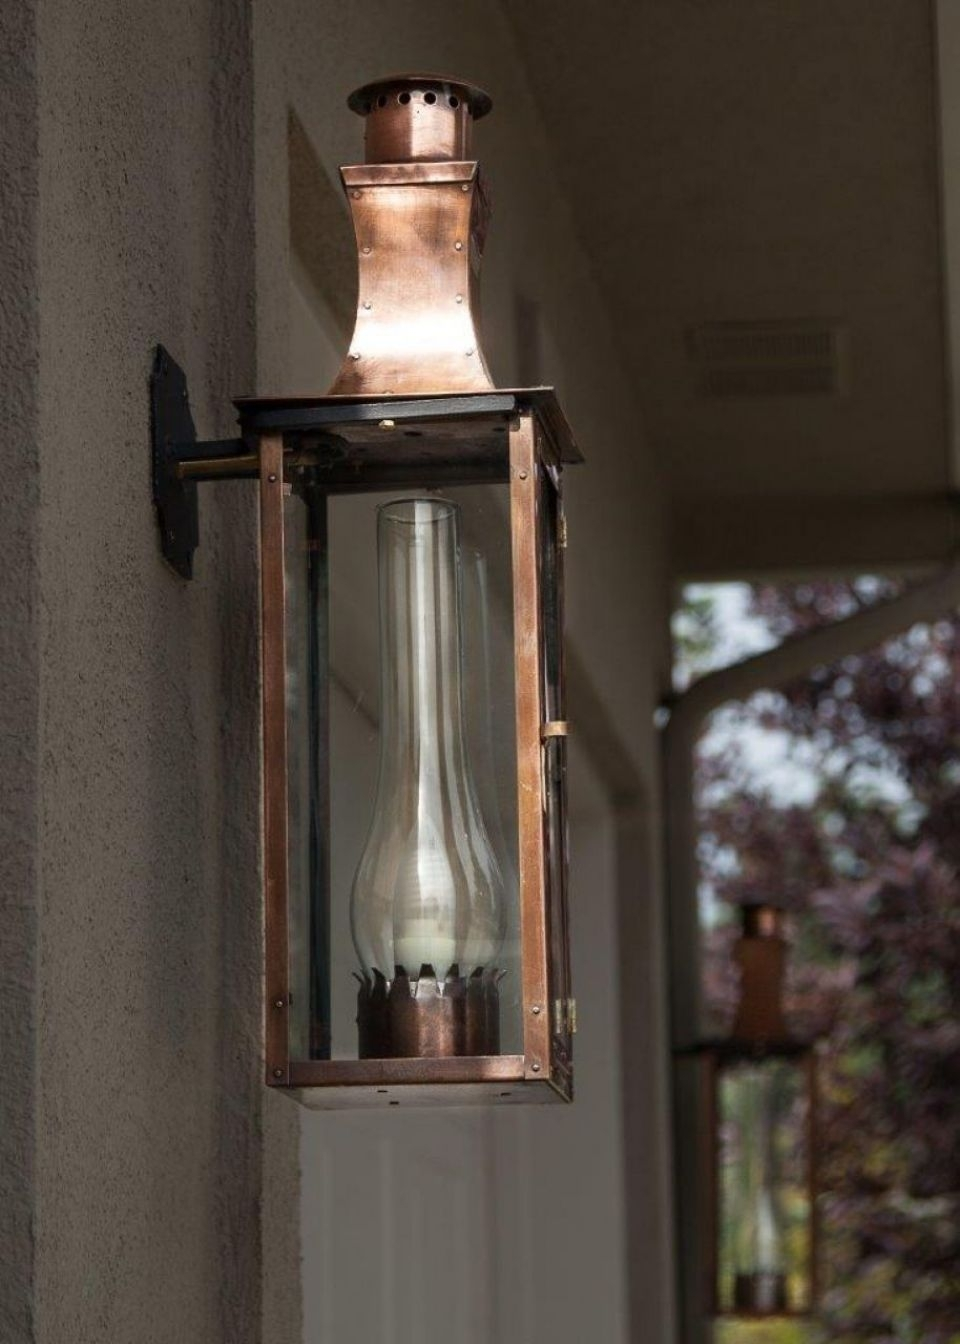 Furniture: Cozy Williamsburg Low Profile Column Mountbevolo For for Copper Outdoor Electric Lanterns (Image 8 of 20)